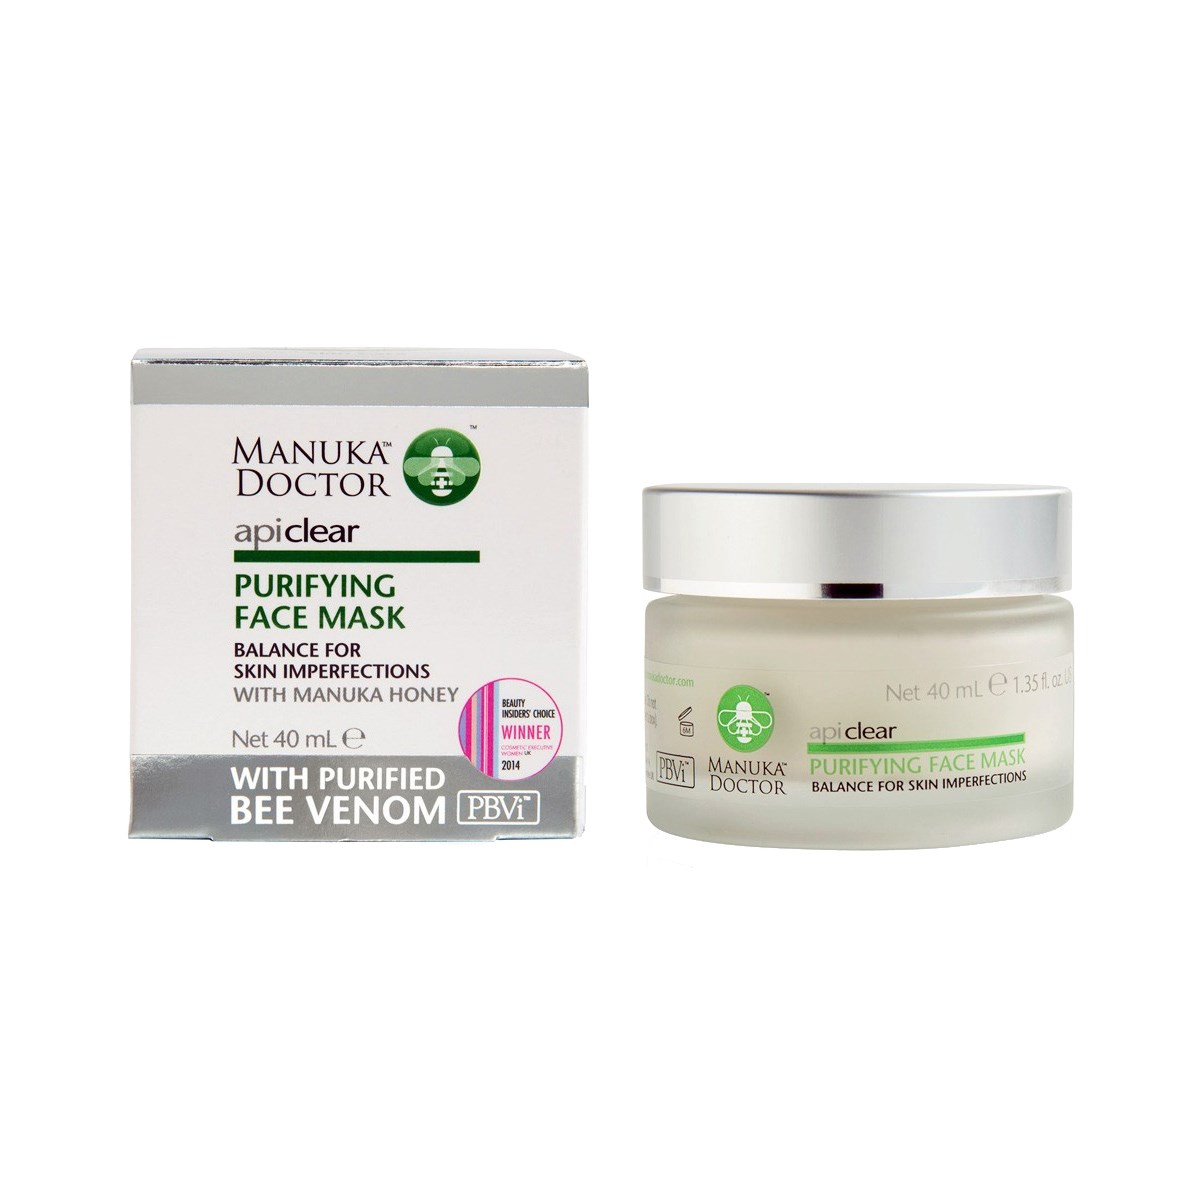 Manuka Doctor ApiClear Purifying Face Mask